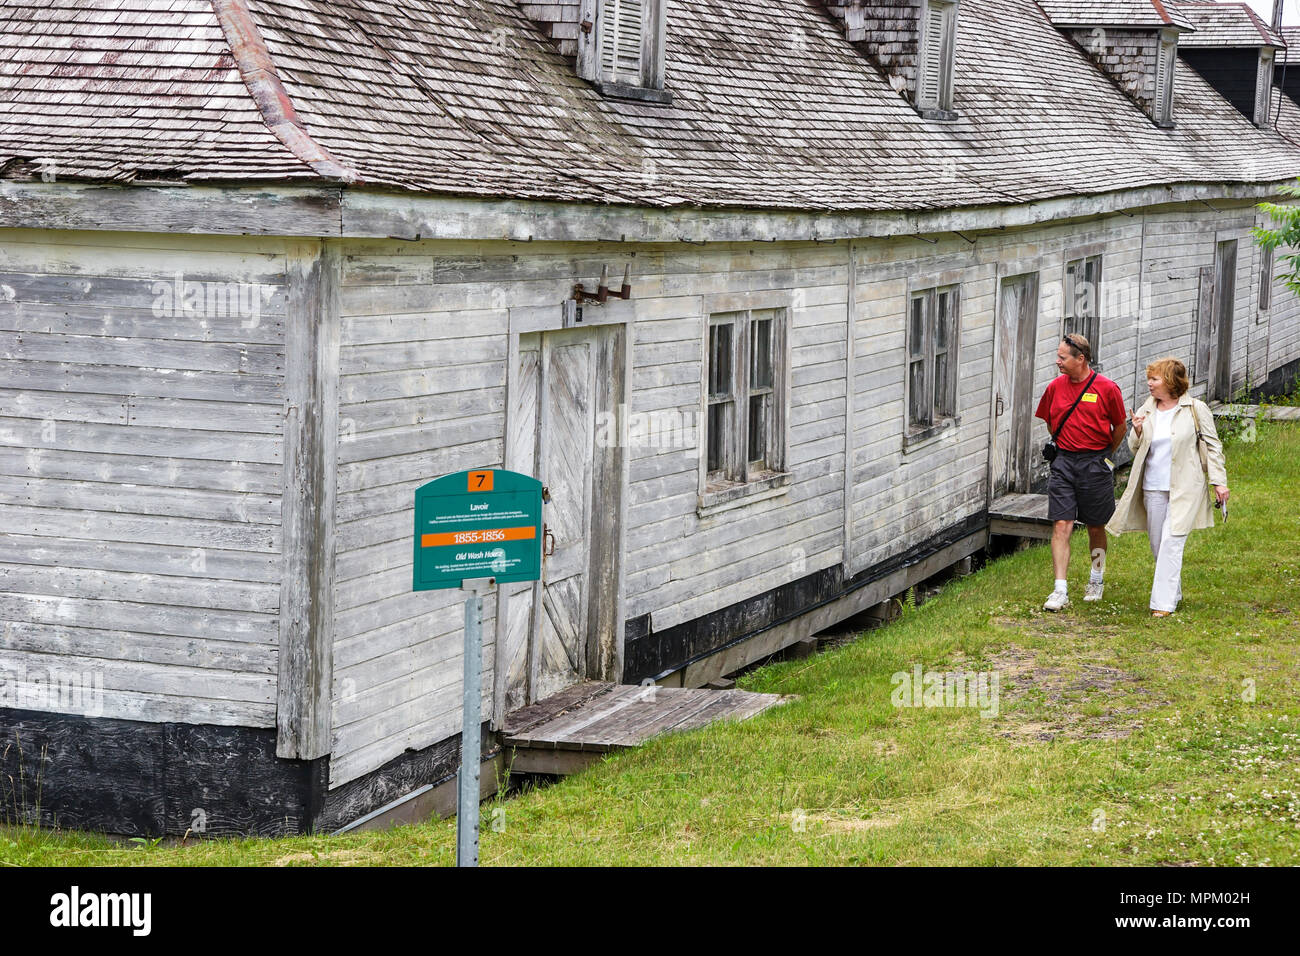 Canada Grosse Ile Irish Memorial National Historical Site immigration quarantine island 1832 1937 Wash House 1855 - Stock Image